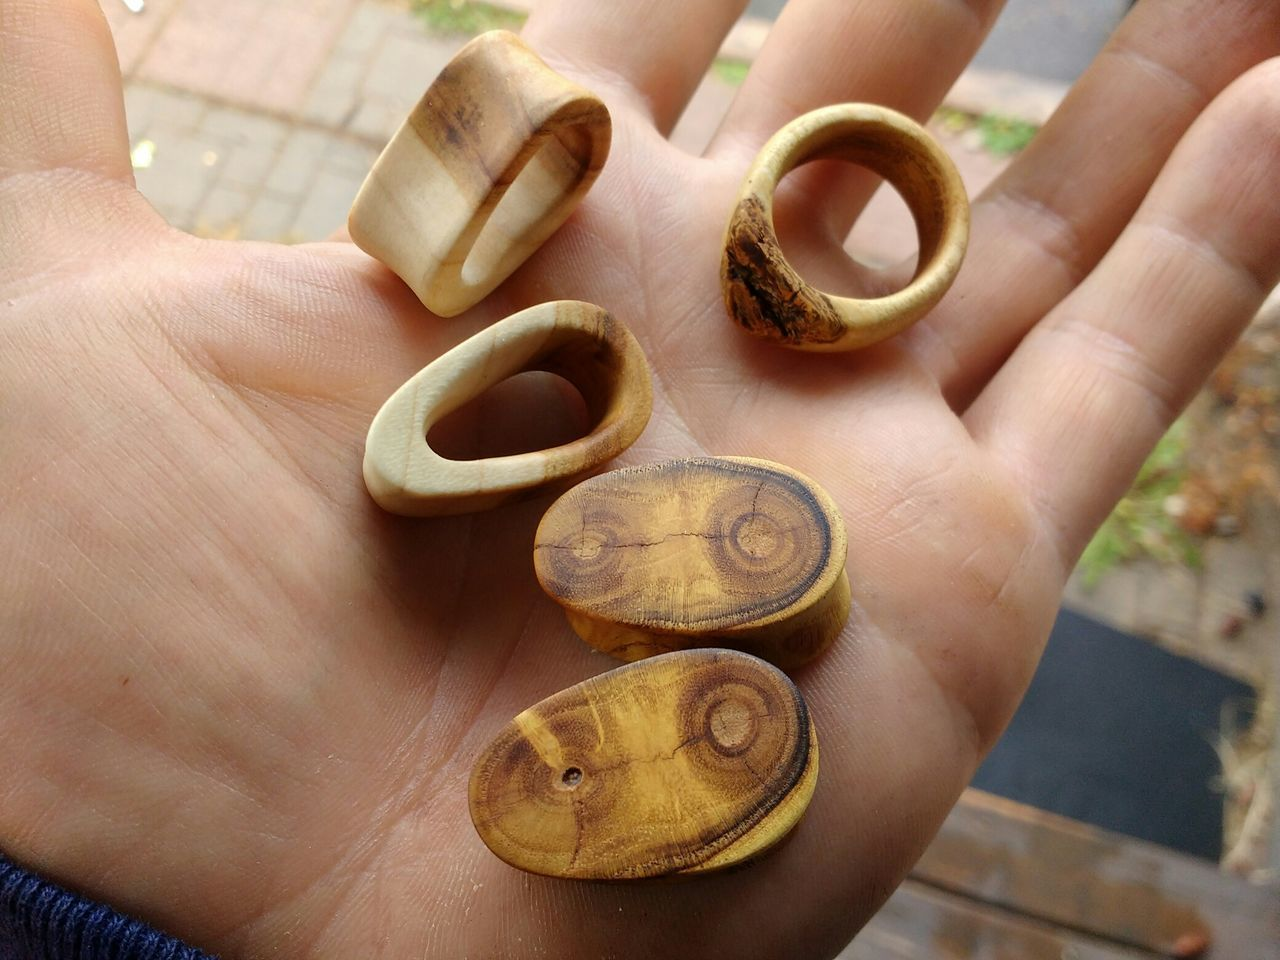 Handmade Mulberry and Cherry wood ear gauges and Mulberry ring. Close-up Human Hand Wood Wood Jewelry Ear Gauges Gauge Ring Mulberry Cherry Wood Plugs Popular Jewelry Wood - Material Woodworking Handmade Gauges Eye4photography  Canada Coast To Coast Eyeem Collection